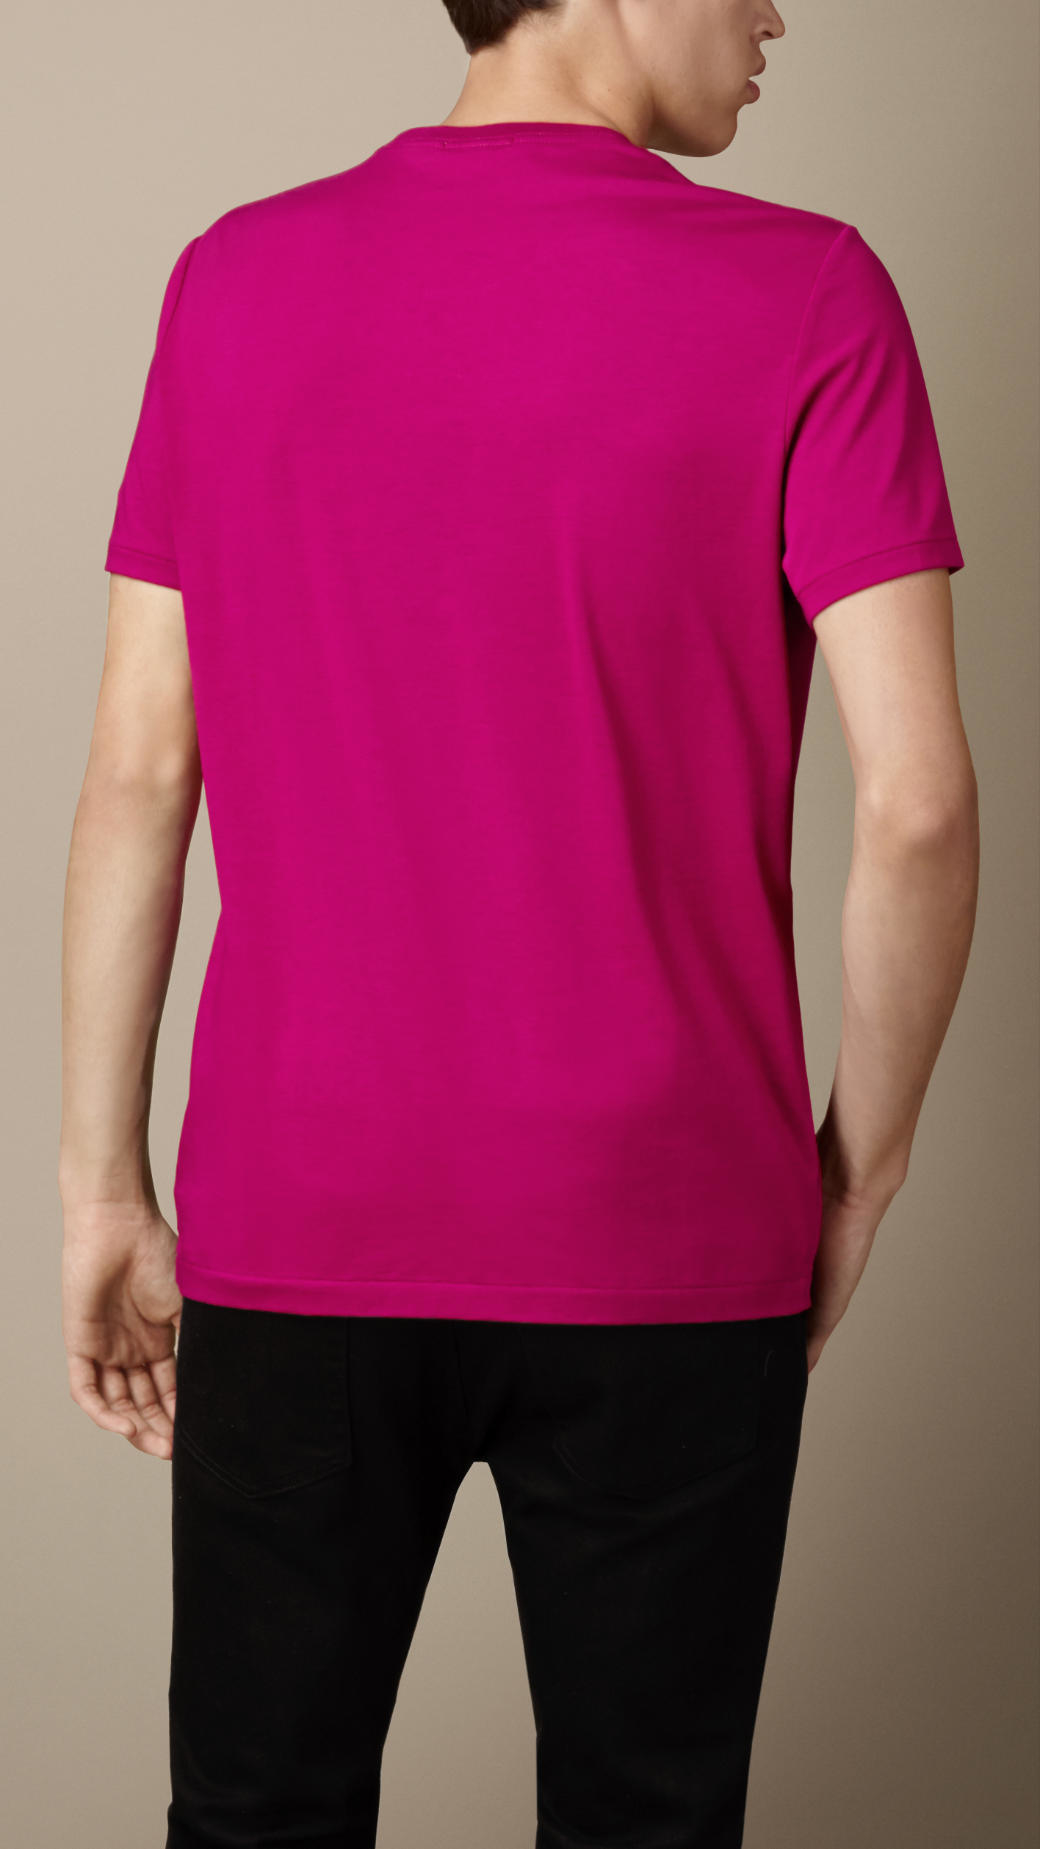 c255f1e1c Burberry Liquid-Soft Cotton T-Shirt in Pink for Men - Lyst